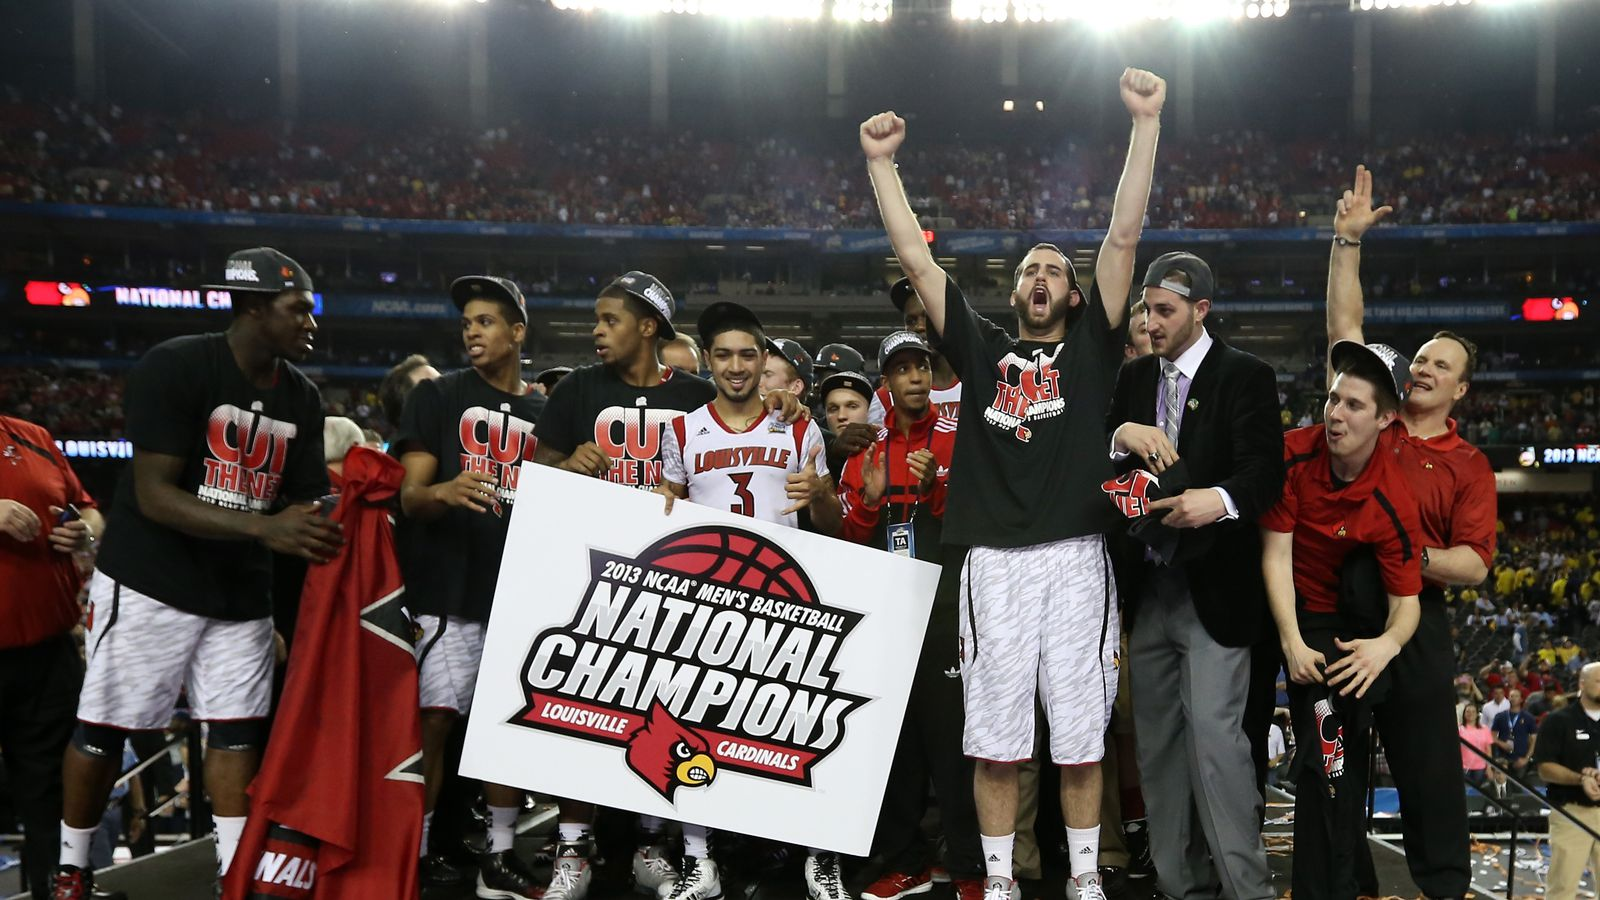 Louisville Cardinals: National Champions